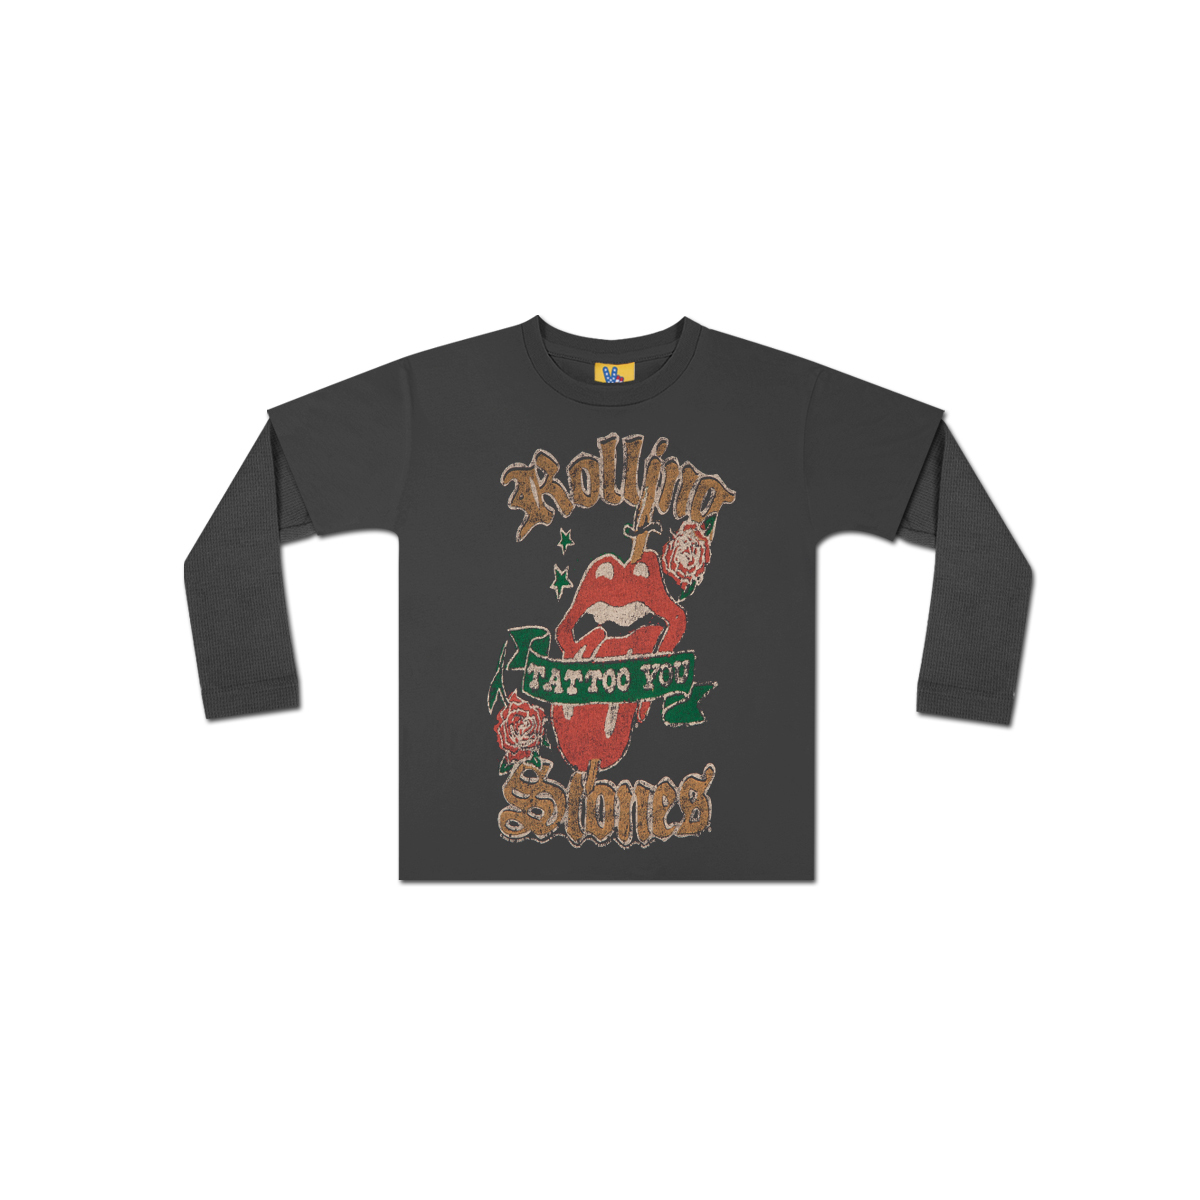 Rolling Stones Tattoo You Infant Twofer T-Shirt